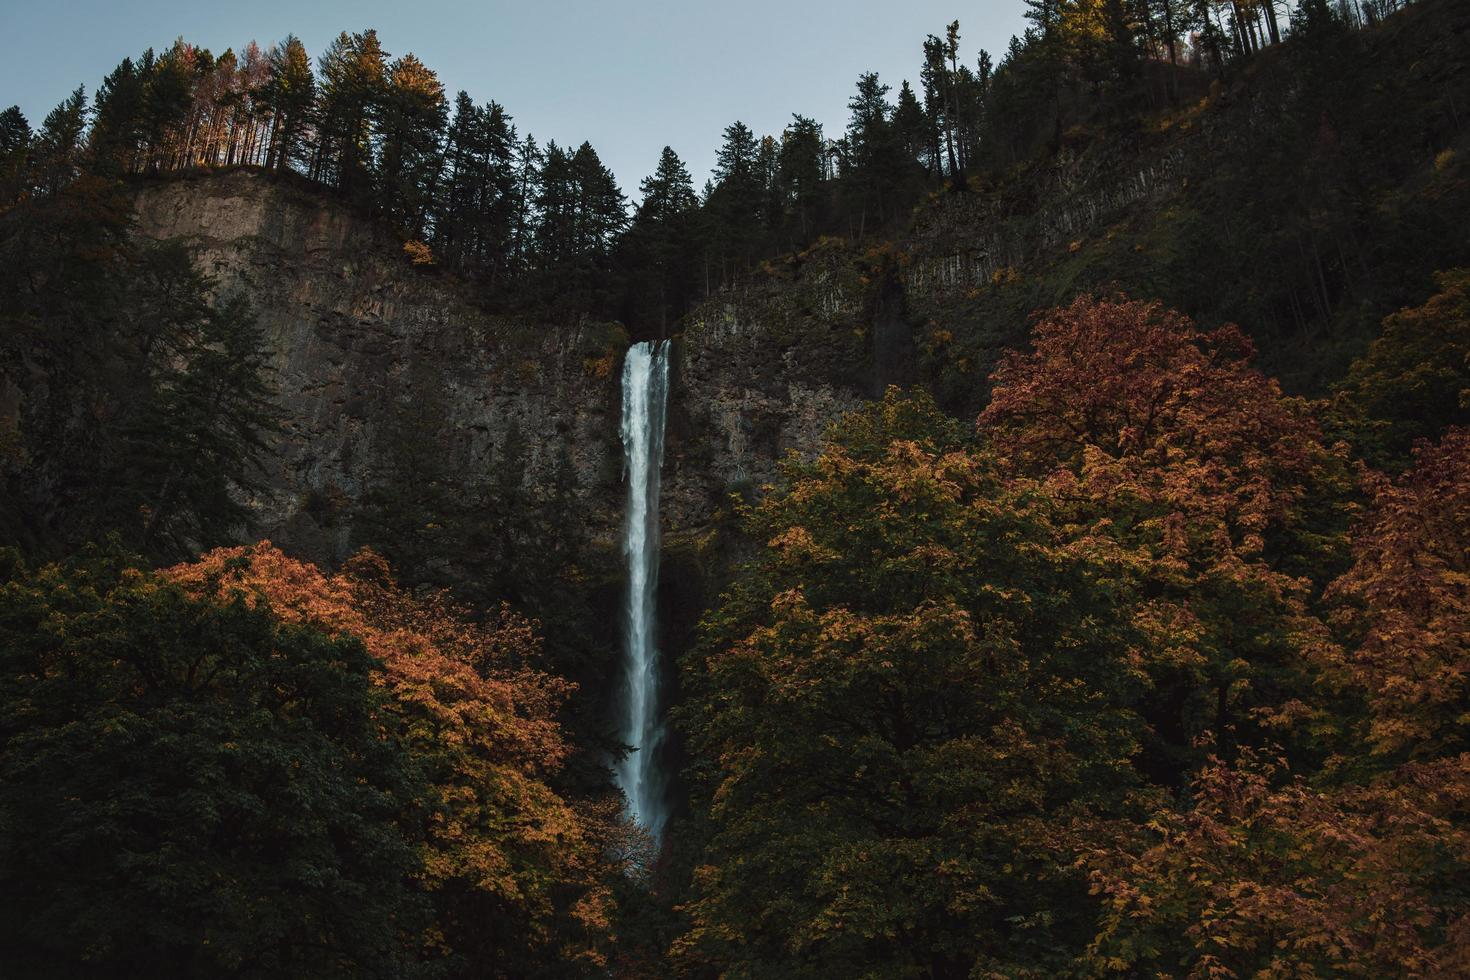 Waterfall surrounded by trees photo